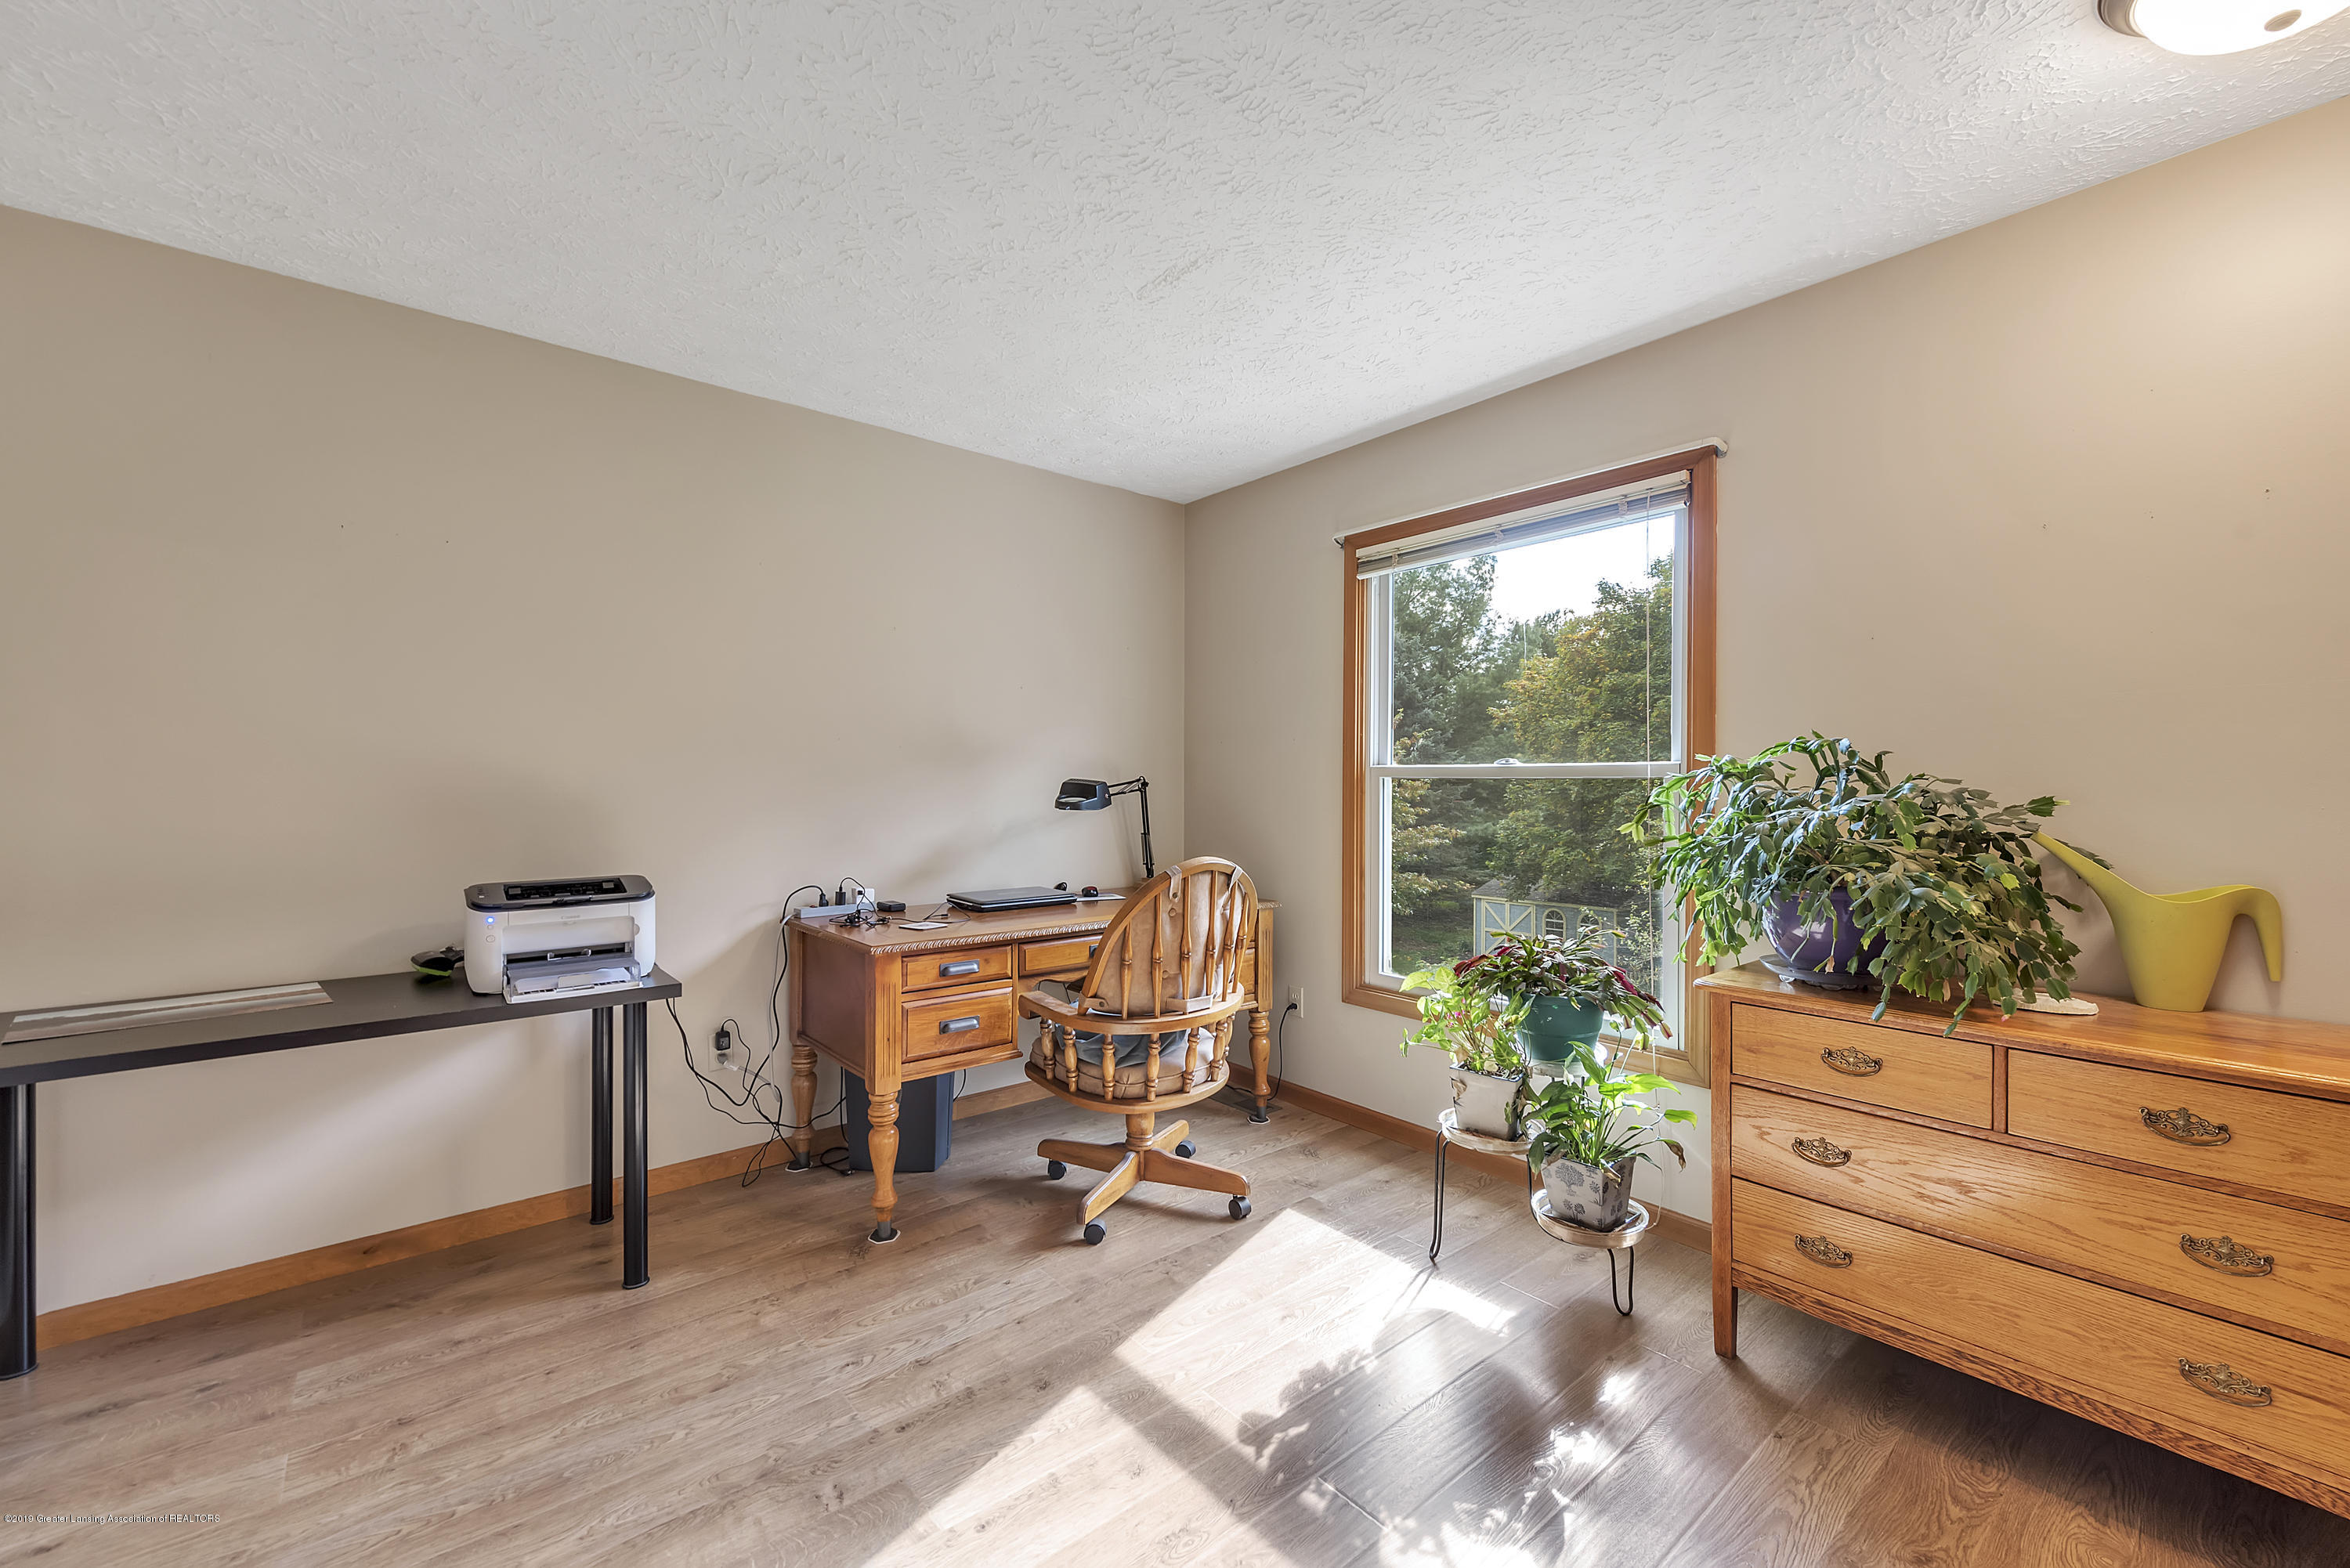 5041 Runnymede Dr - 5041-Runnymede-Dr-WindowStill-Real-Estat - 22